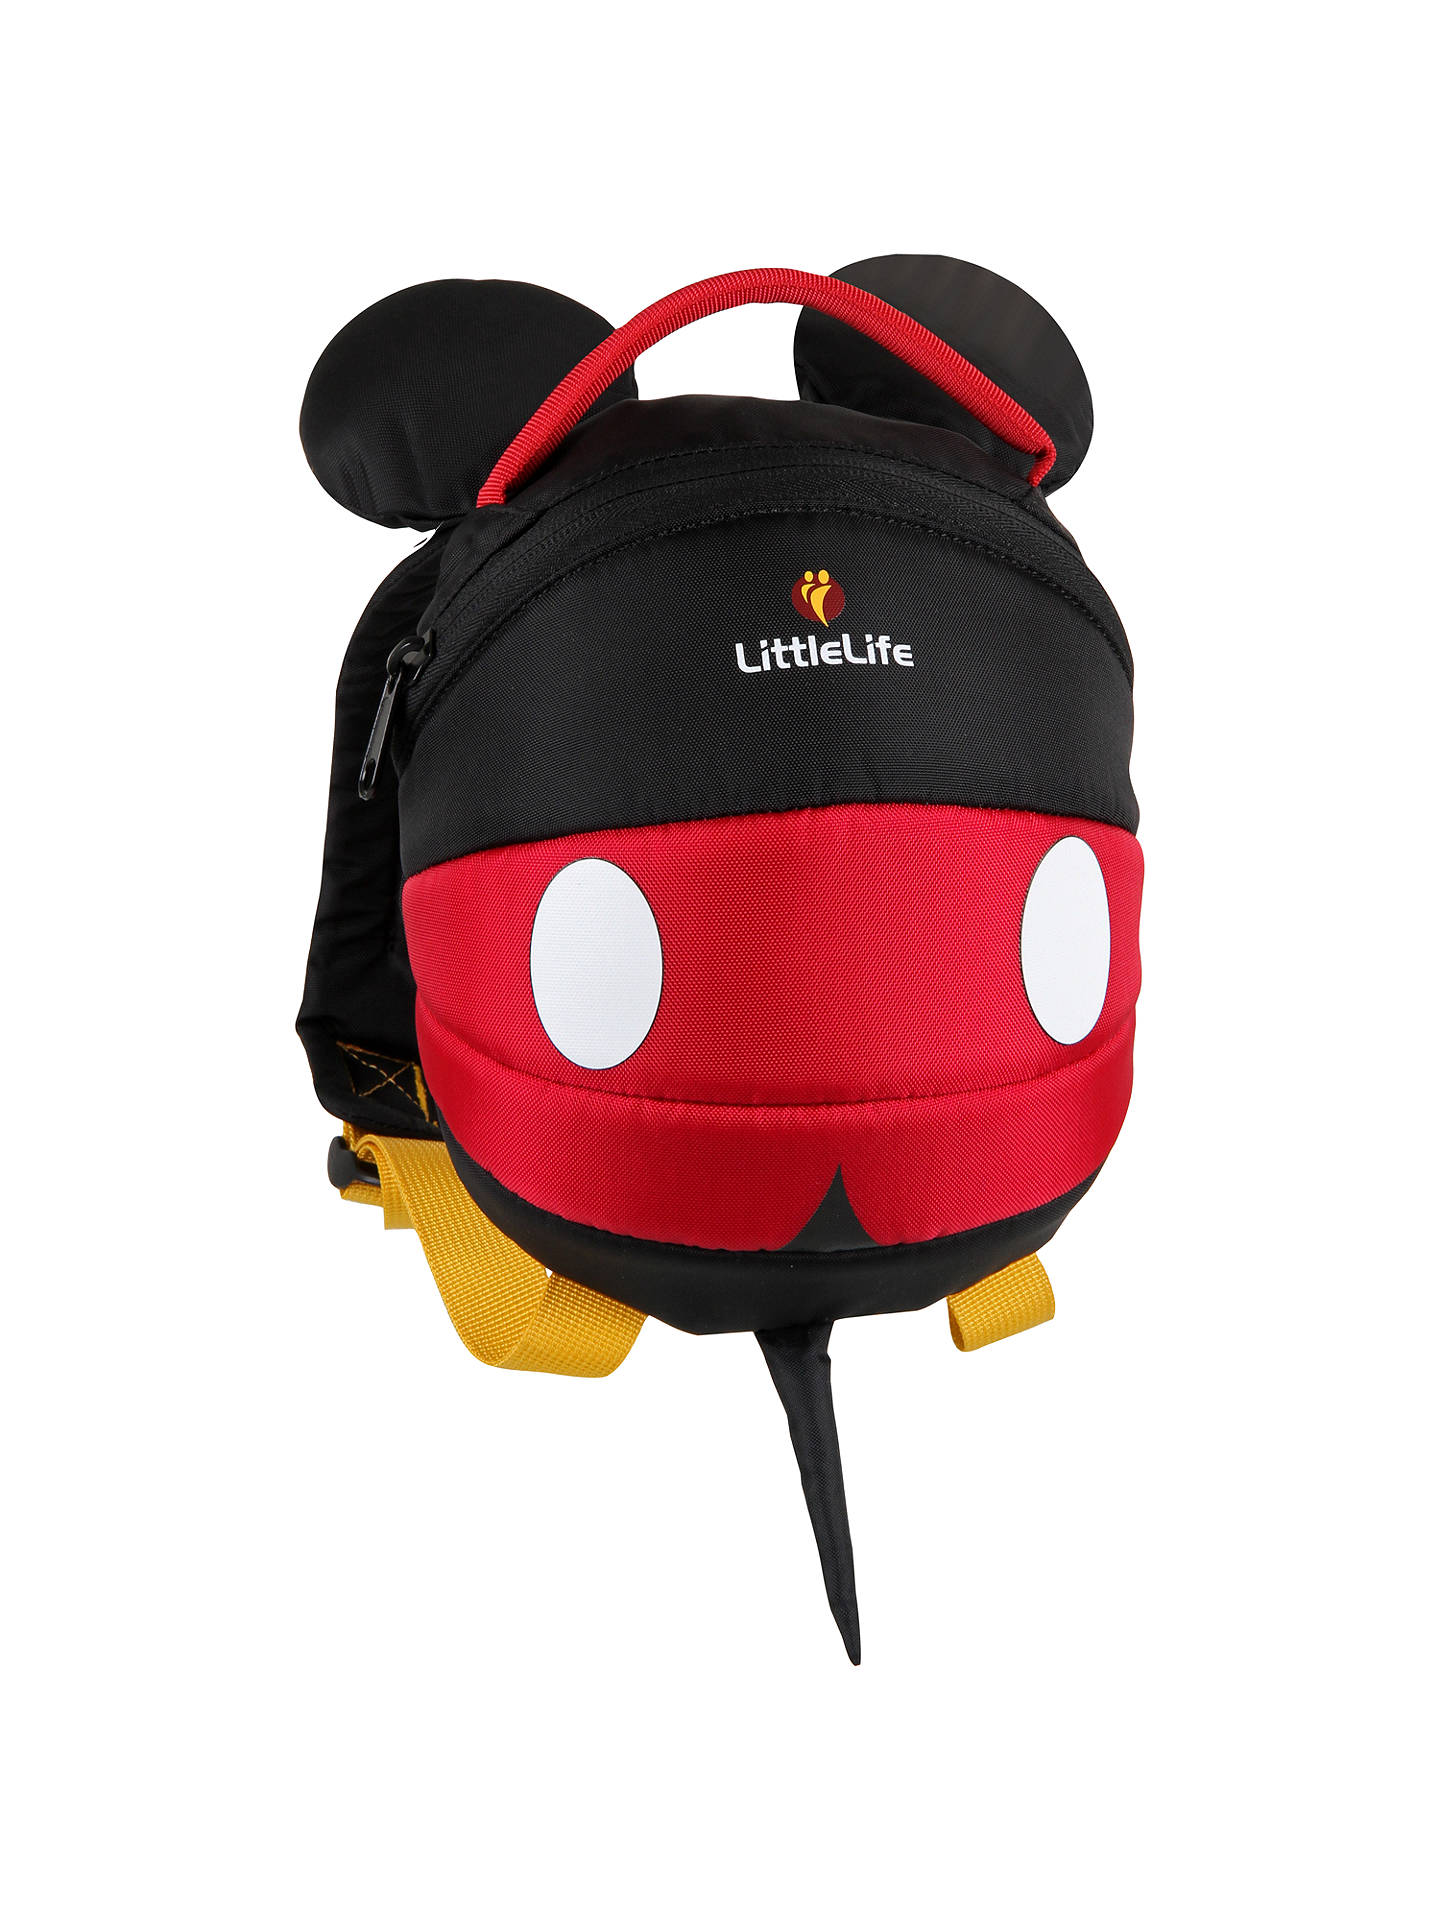 a6bdc1423b2 Buy LittleLife Mickey Mouse Toddler Backpack